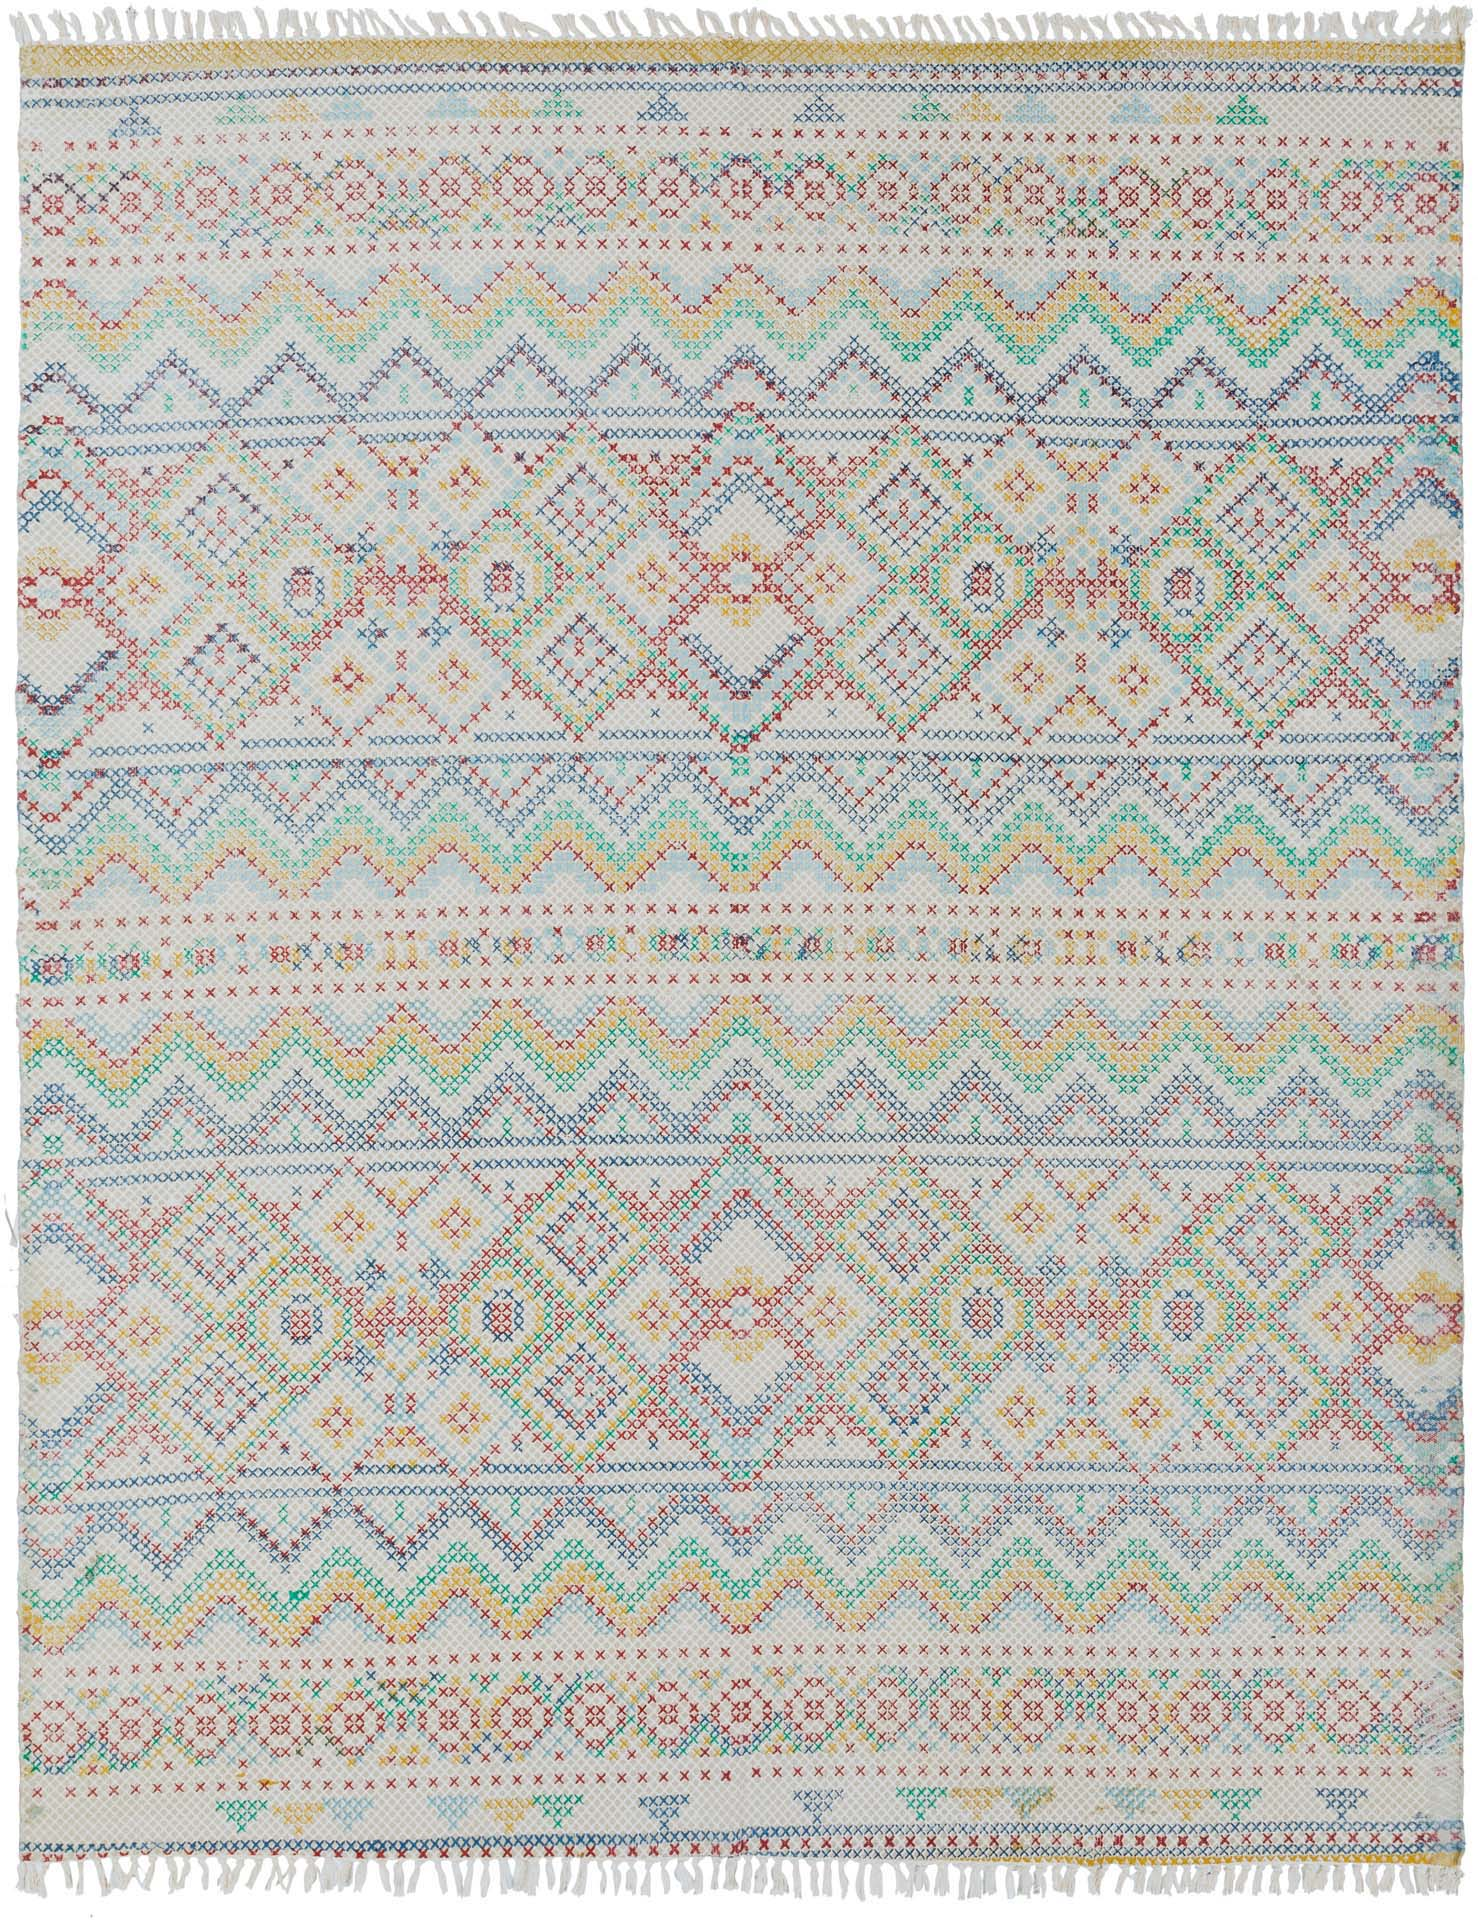 Hand woven area rug from India in pastel blue, pink and green with fringe